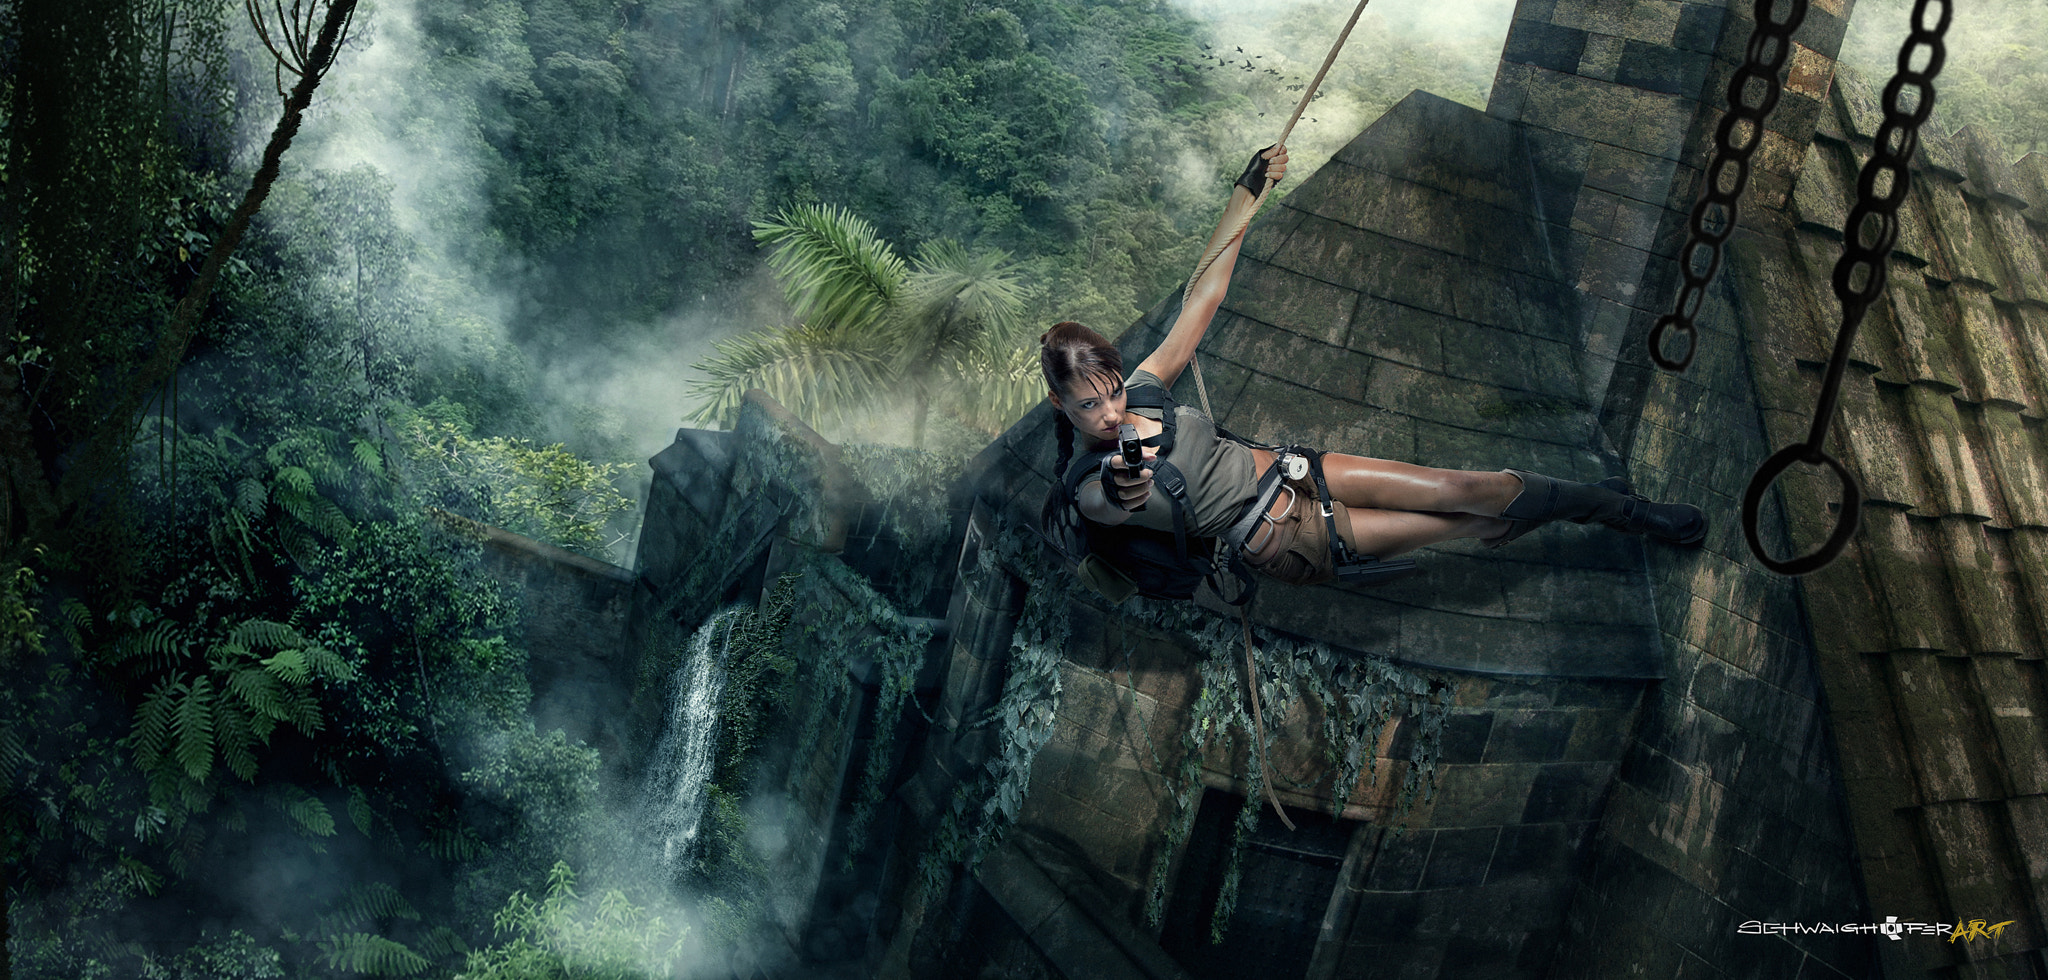 Photograph Lara Croft by Matthias Schwaighofer on 500px